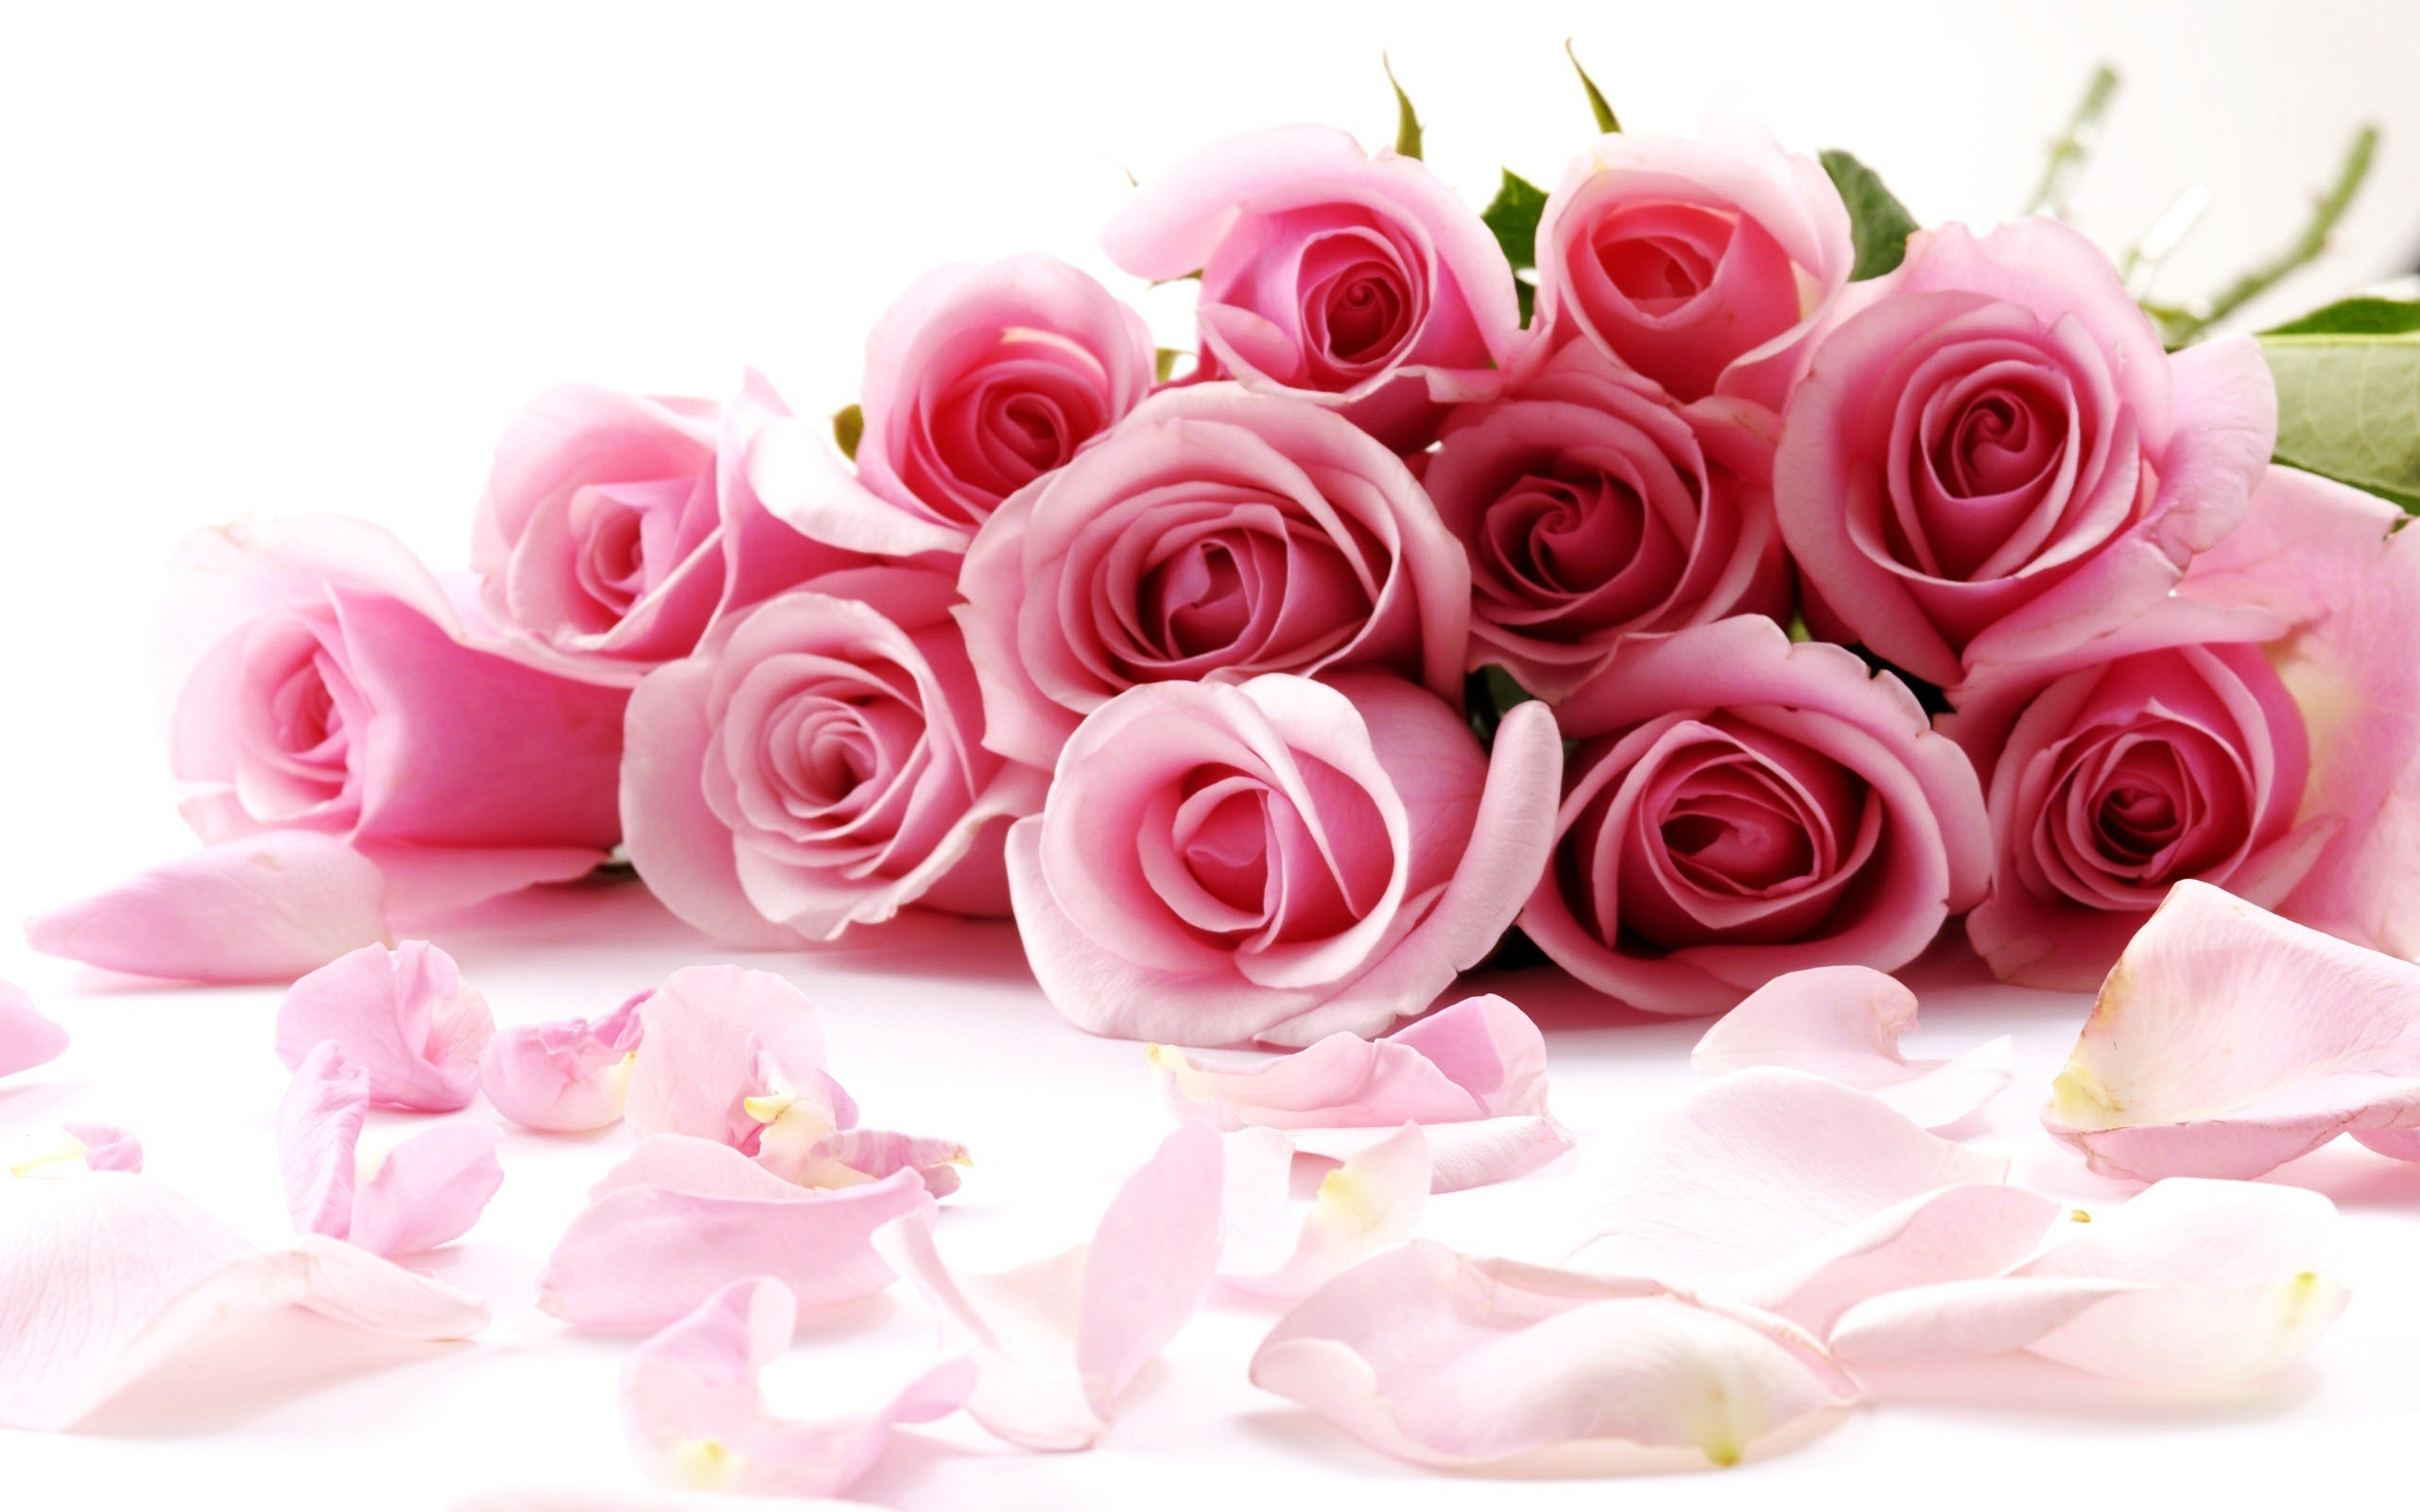 Valentines day gift ideas for her beauty bloggers valentines day roses izmirmasajfo